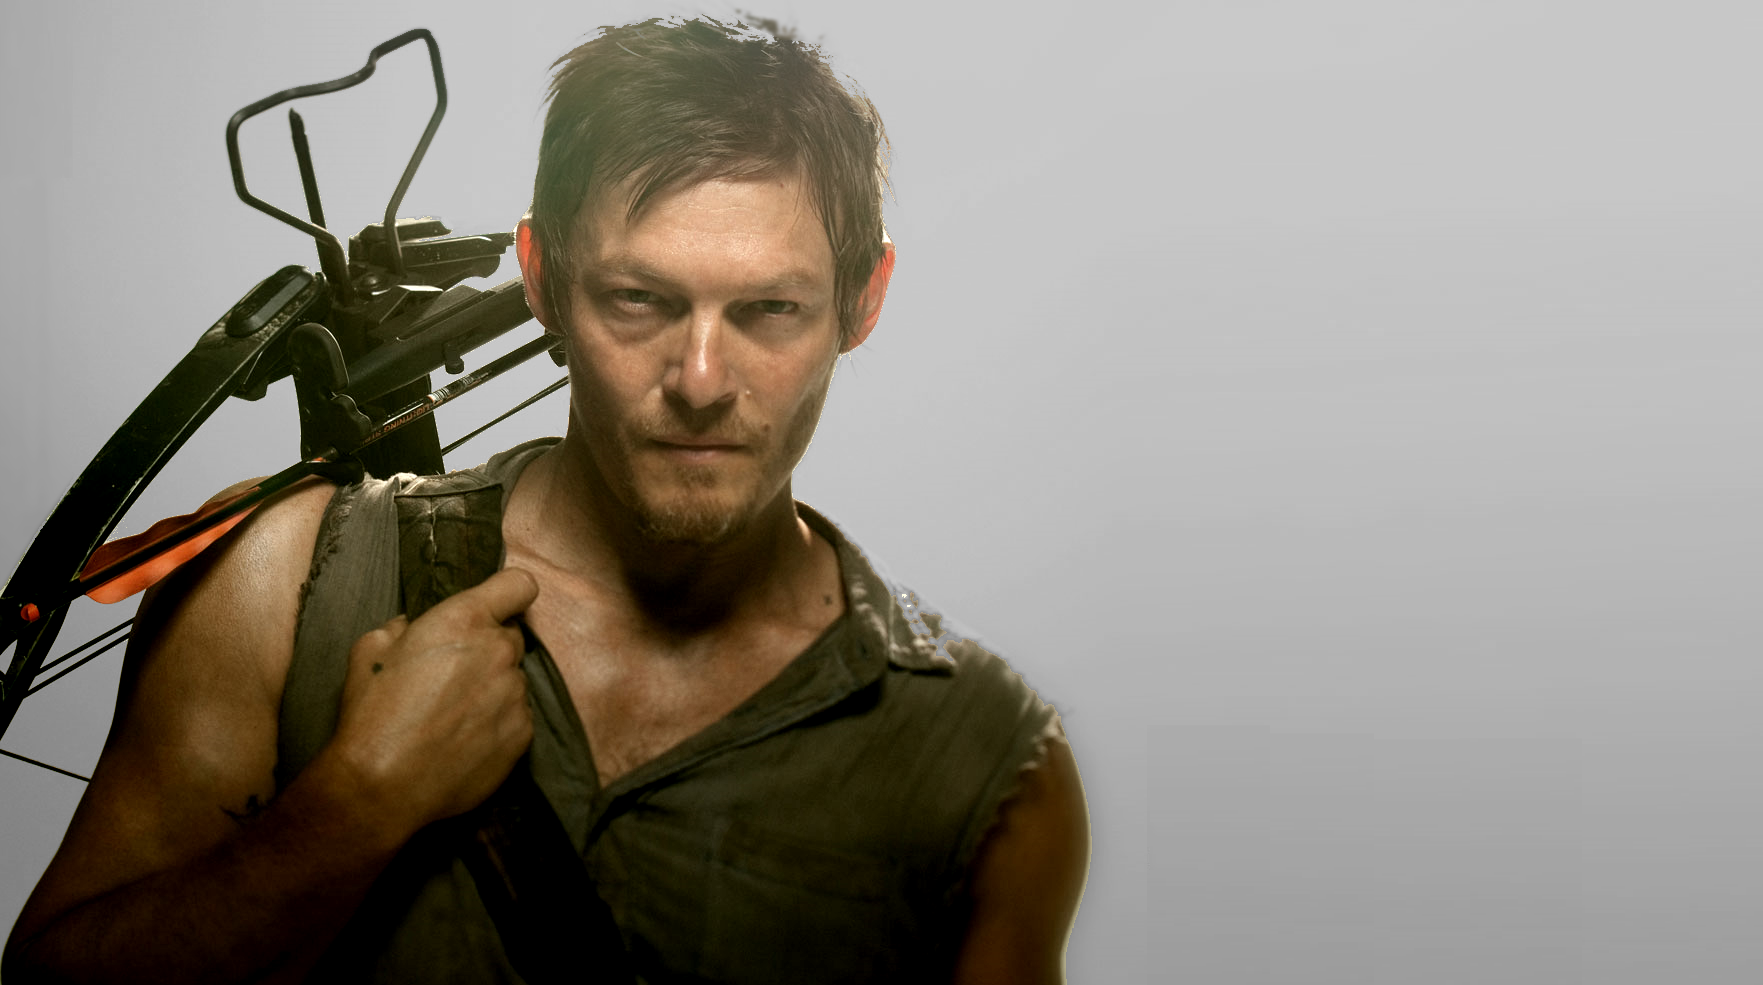 Daryl Dixon HD Wallpapers Find Best Latest In For Your PC Desktop Background Mobile Phones